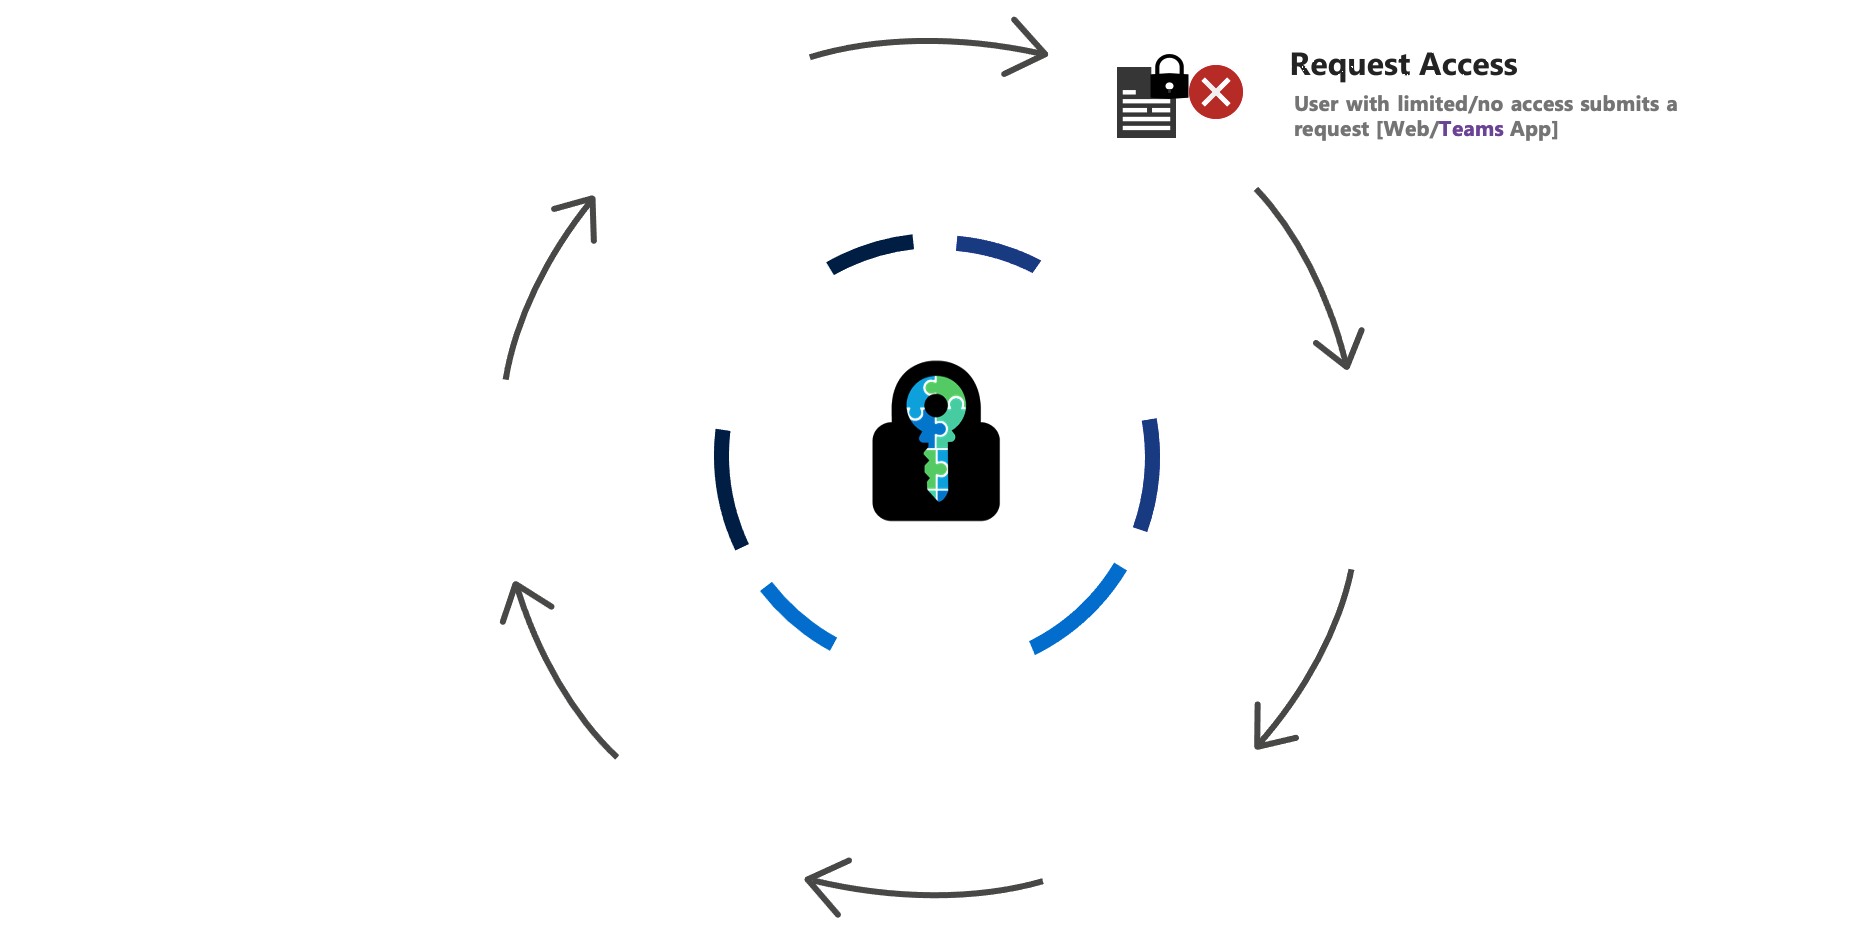 E-cryptor Lifecycle Request access